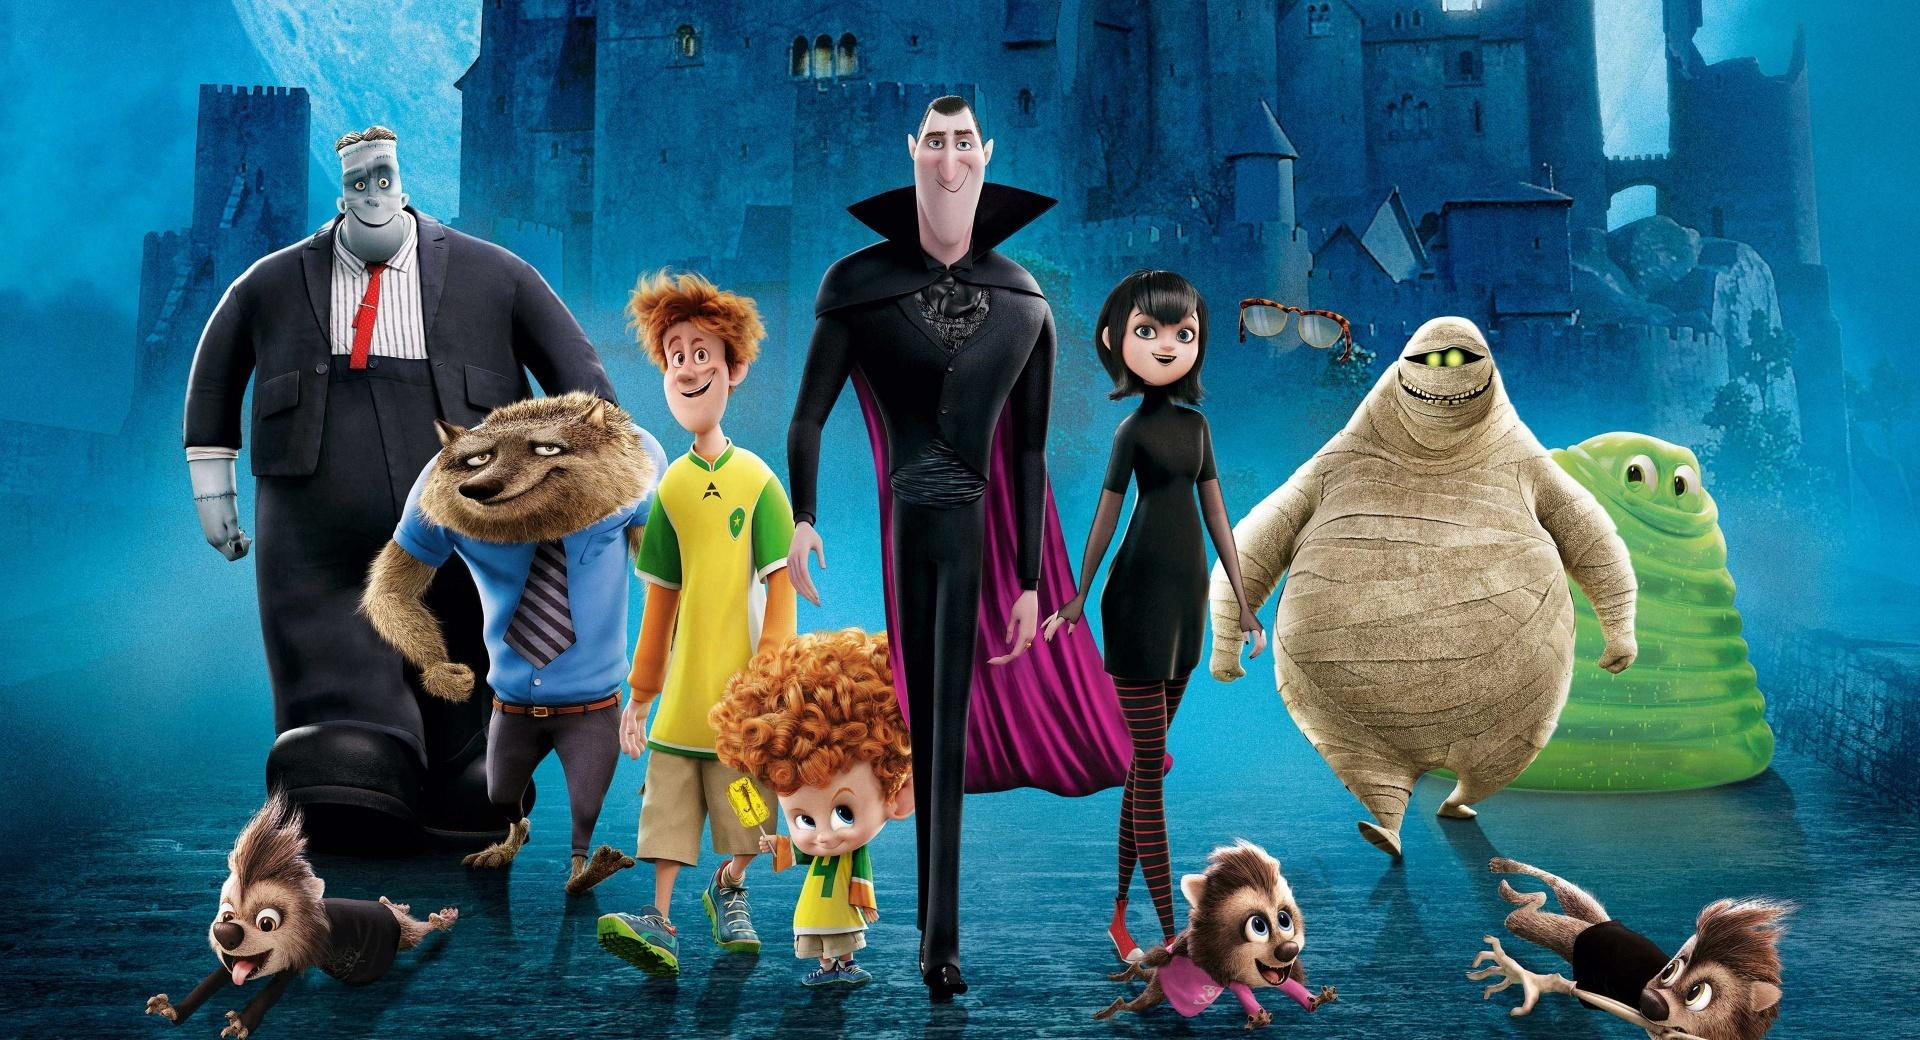 Movie Hotel Transylvania 2 2015 wallpapers HD quality